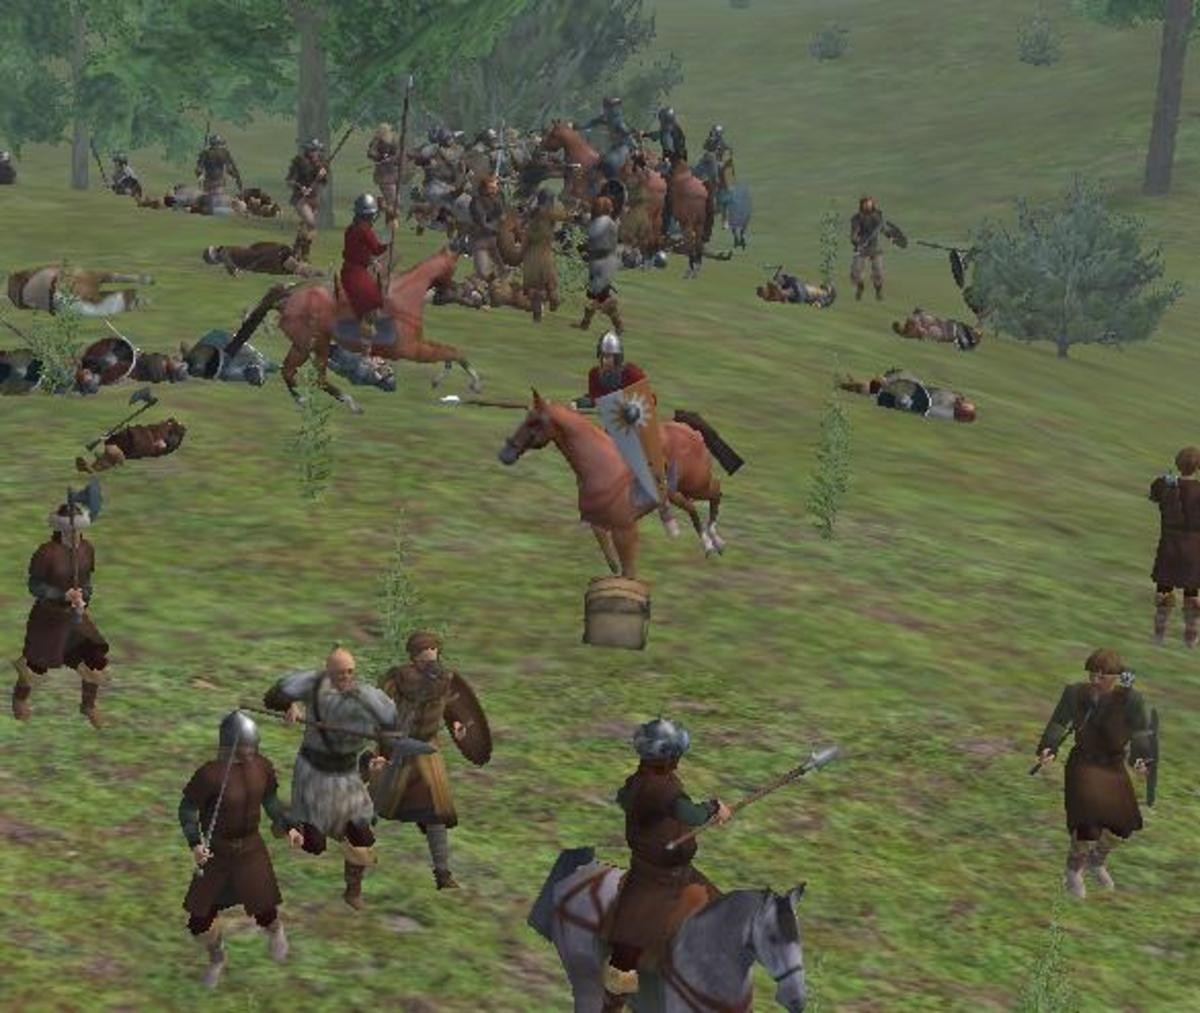 A chaotic battlefield - cavalry fight amongst a horde of bandits